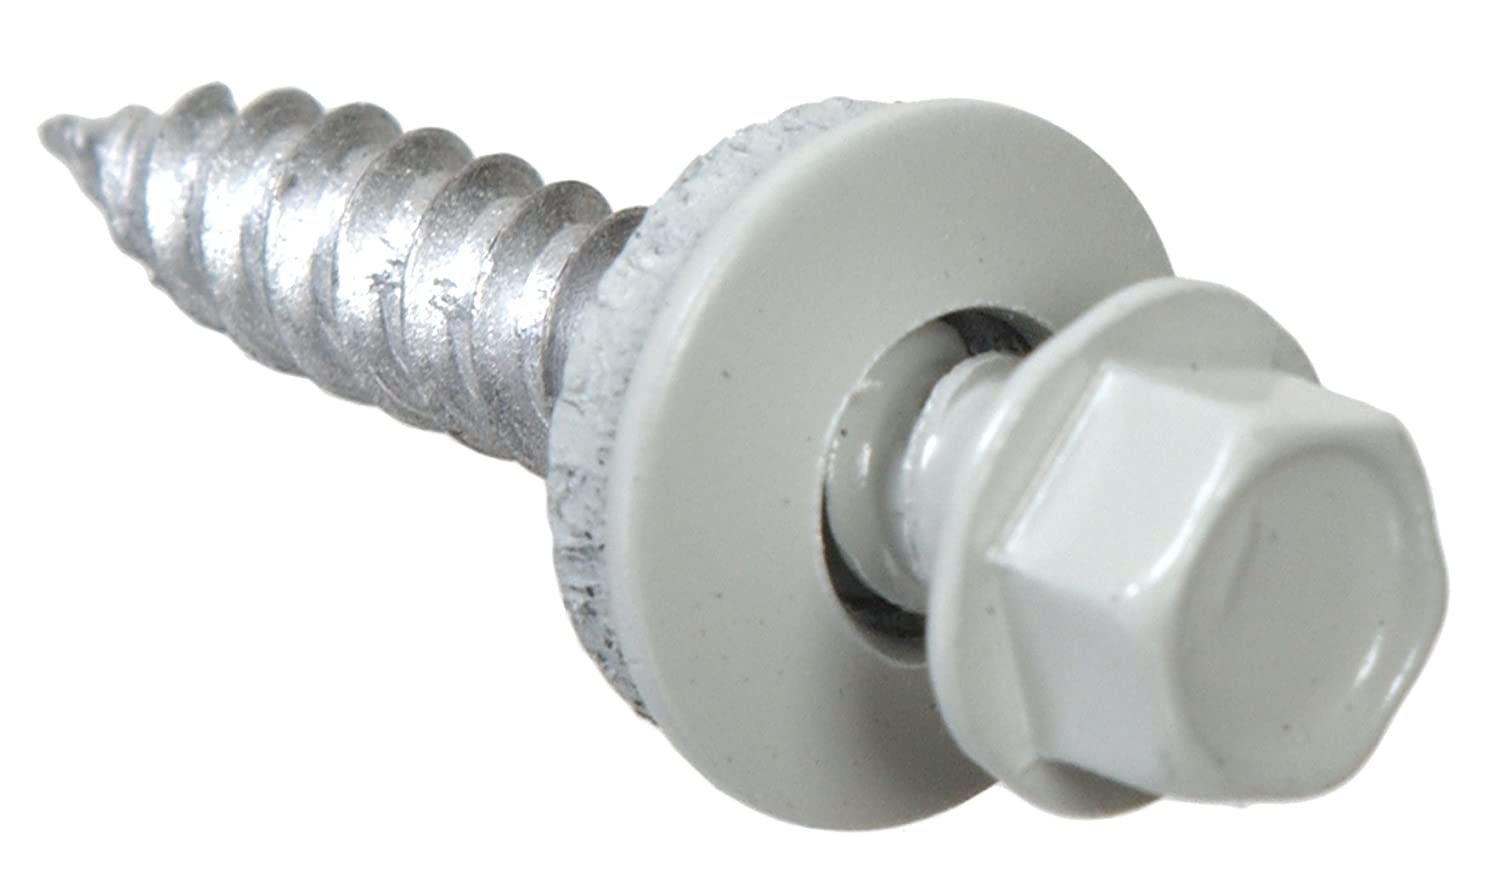 The Hillman GroupThe Hillman Group 35293 Self-Piercing Sheeters Screw White 10 x 1 35-Pack